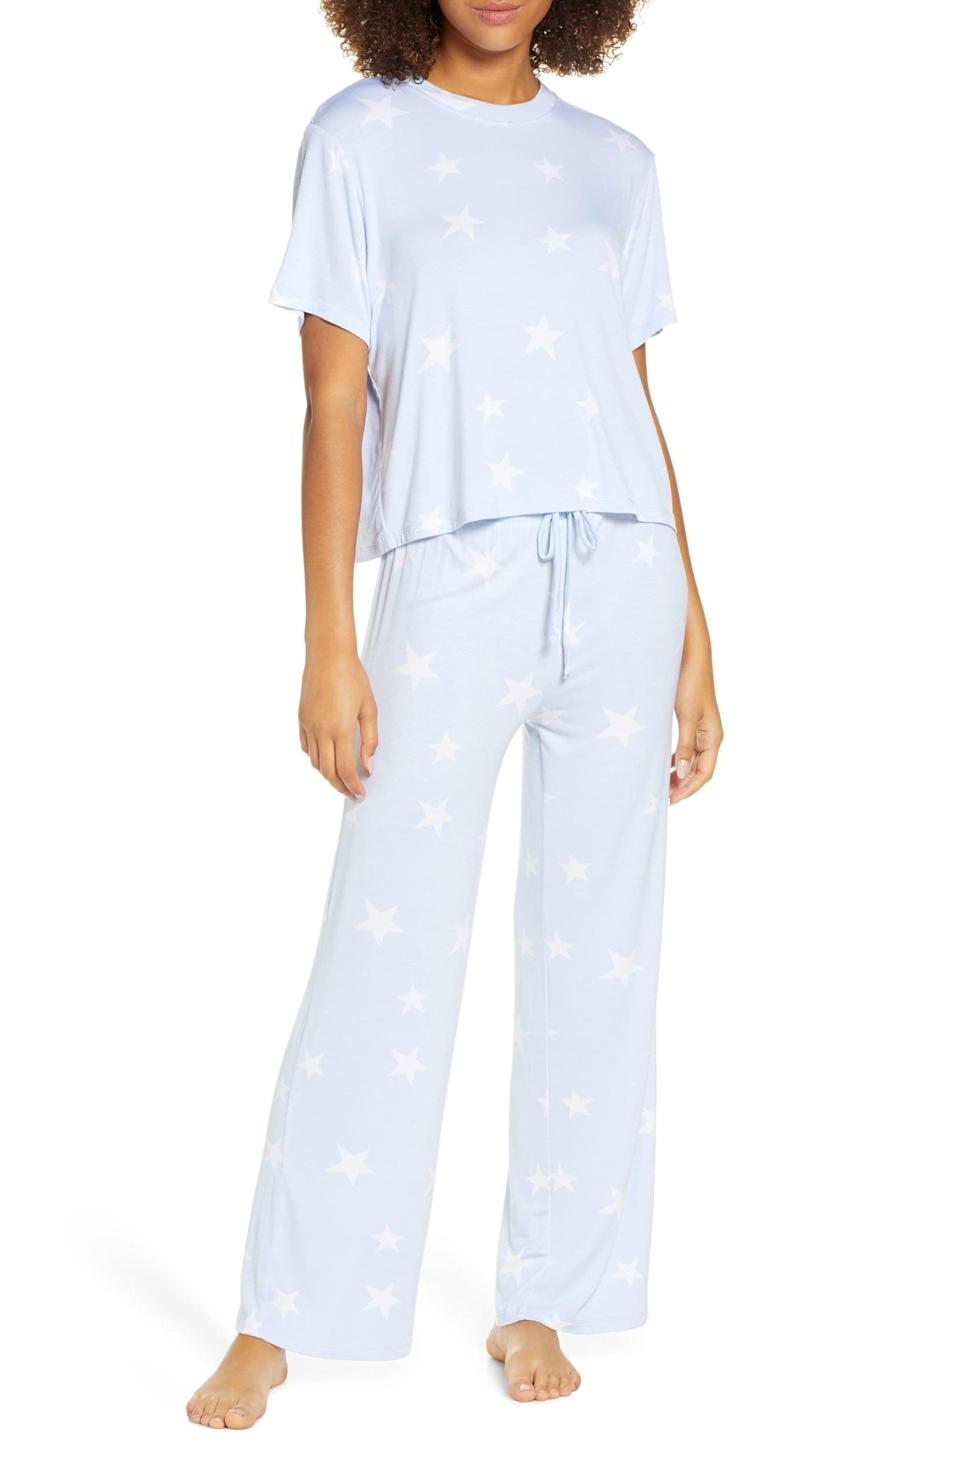 <p>These <span>Honeydew Intimates All American Pajamas </span> ($48) are so cute and cozy.</p>